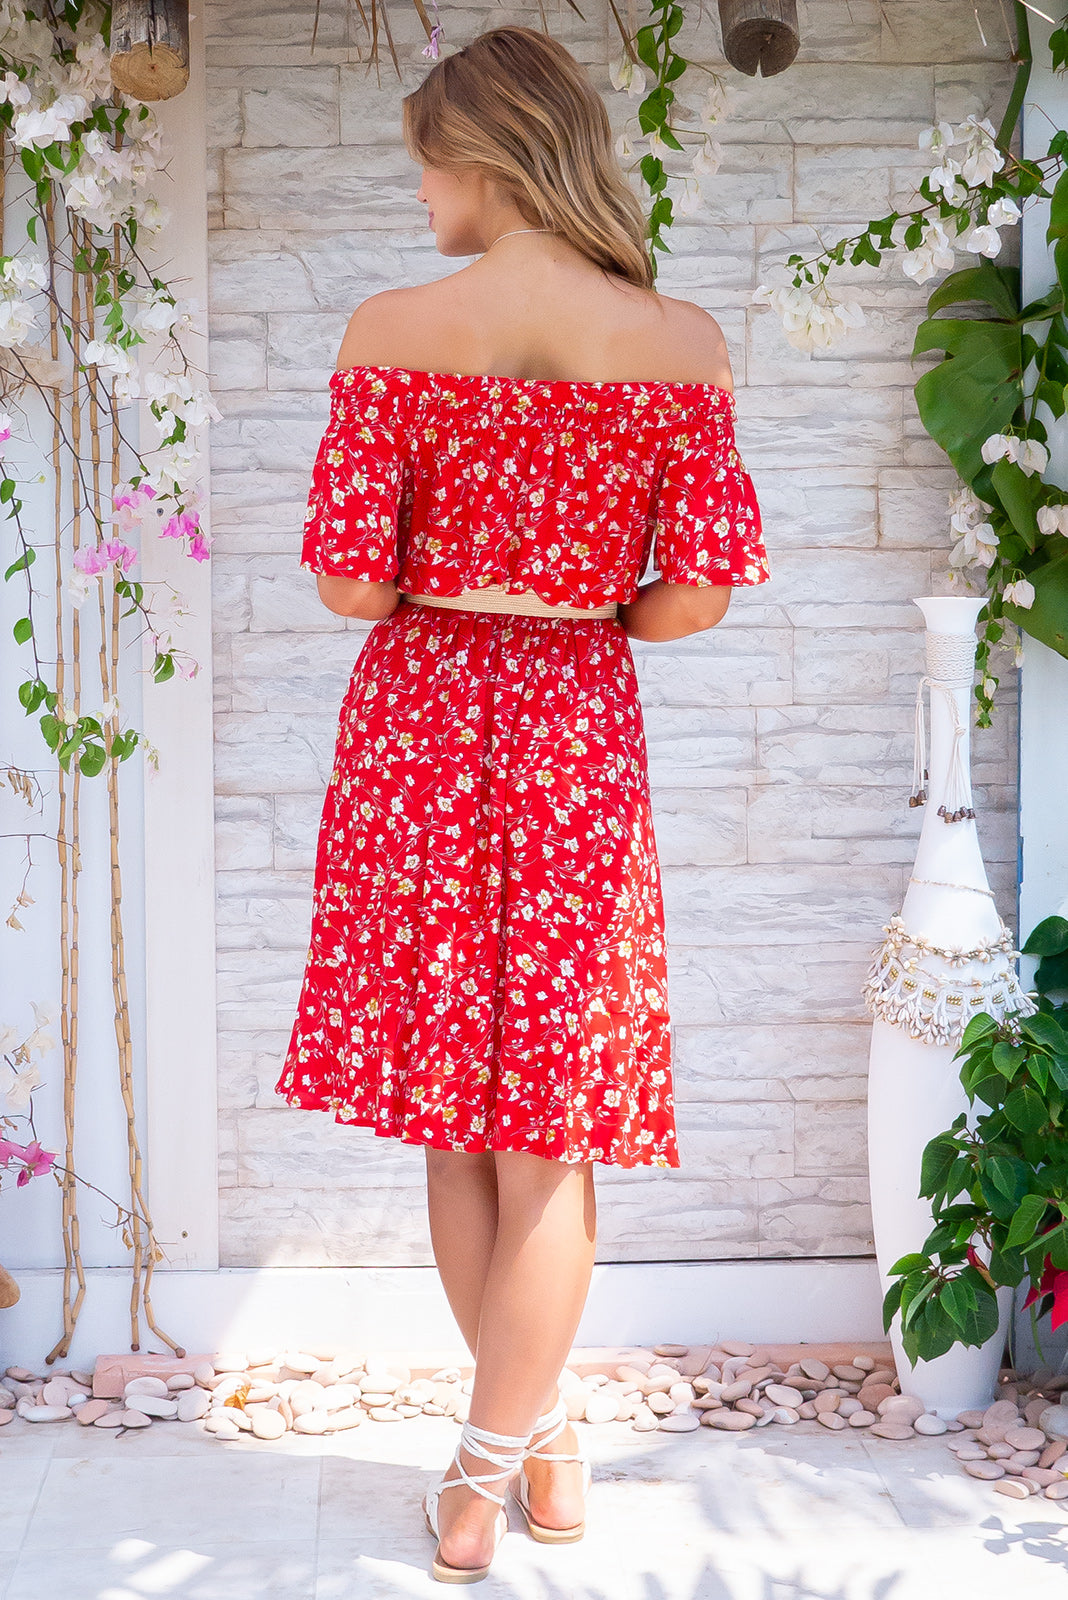 Roxie Tangelo Red Mini Dress, a red hot summer number has soft elastic and ruching to gently hold the dress across the shoulders, side pockets, elastic waist in bright red base with a delicate ditzy floral design in woven 100% viscose.